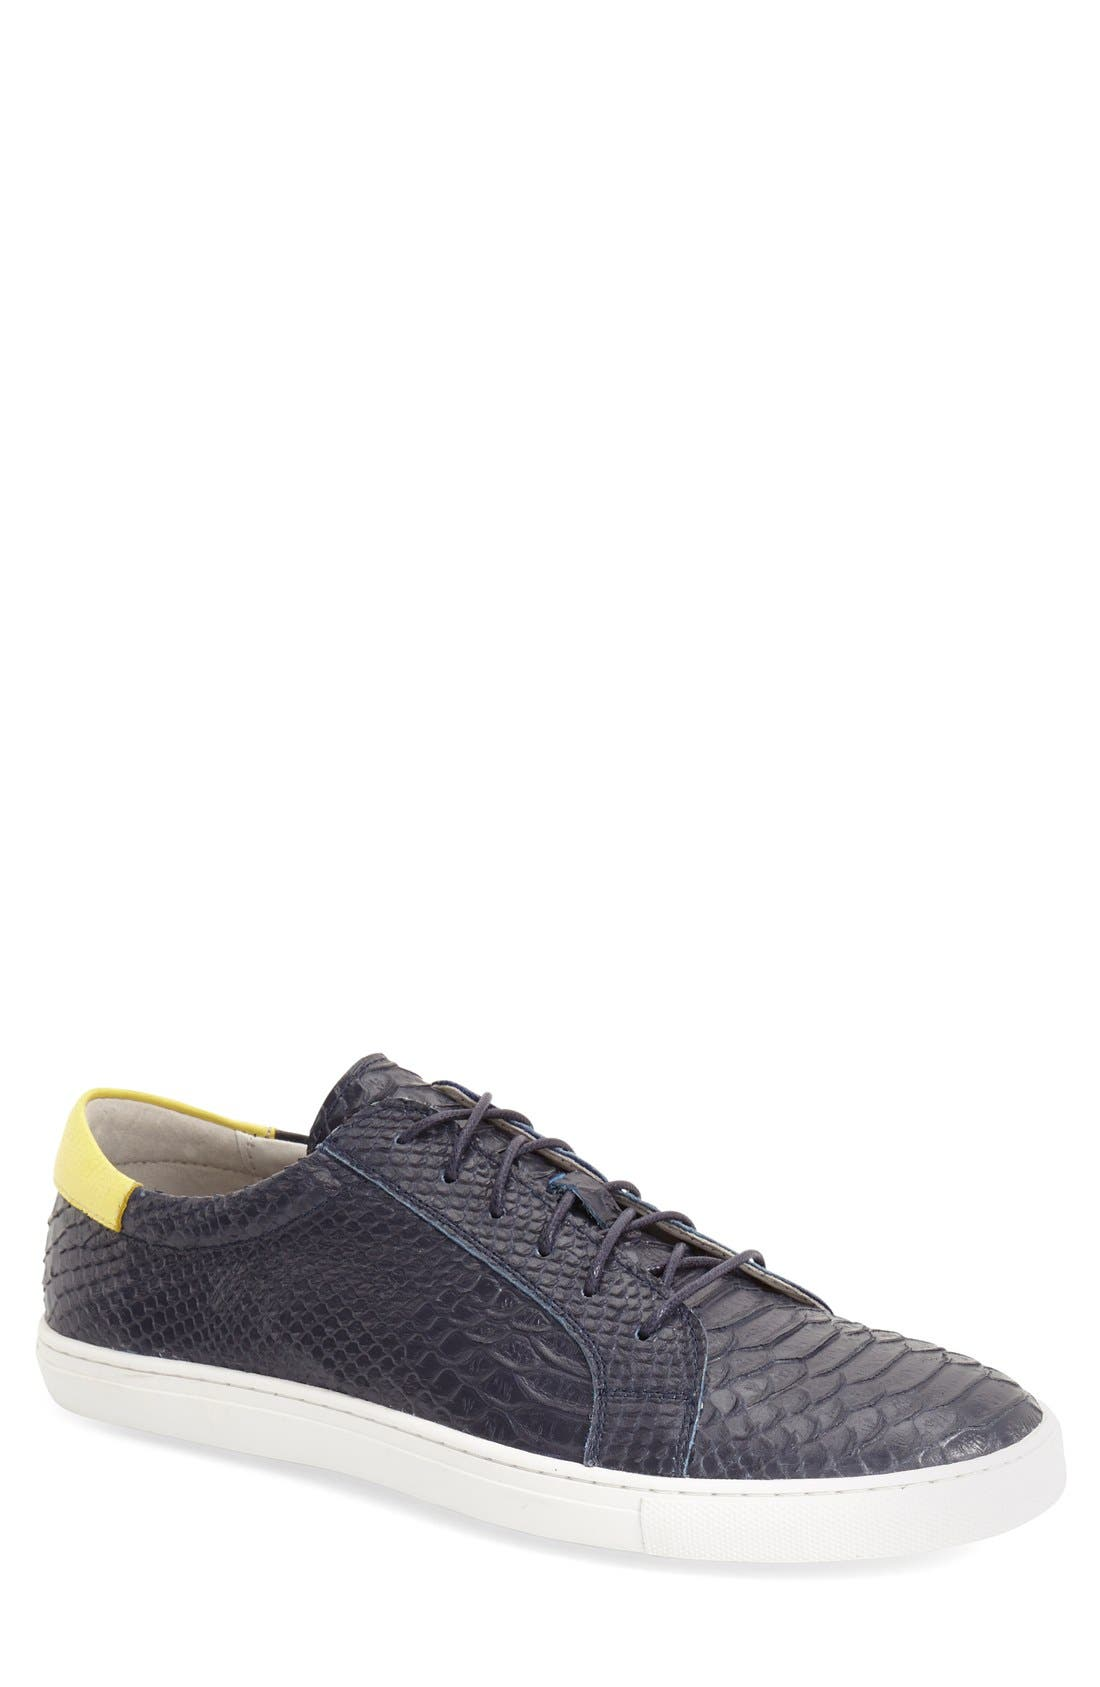 'Riff' Sneaker,                         Main,                         color, Navy Leather